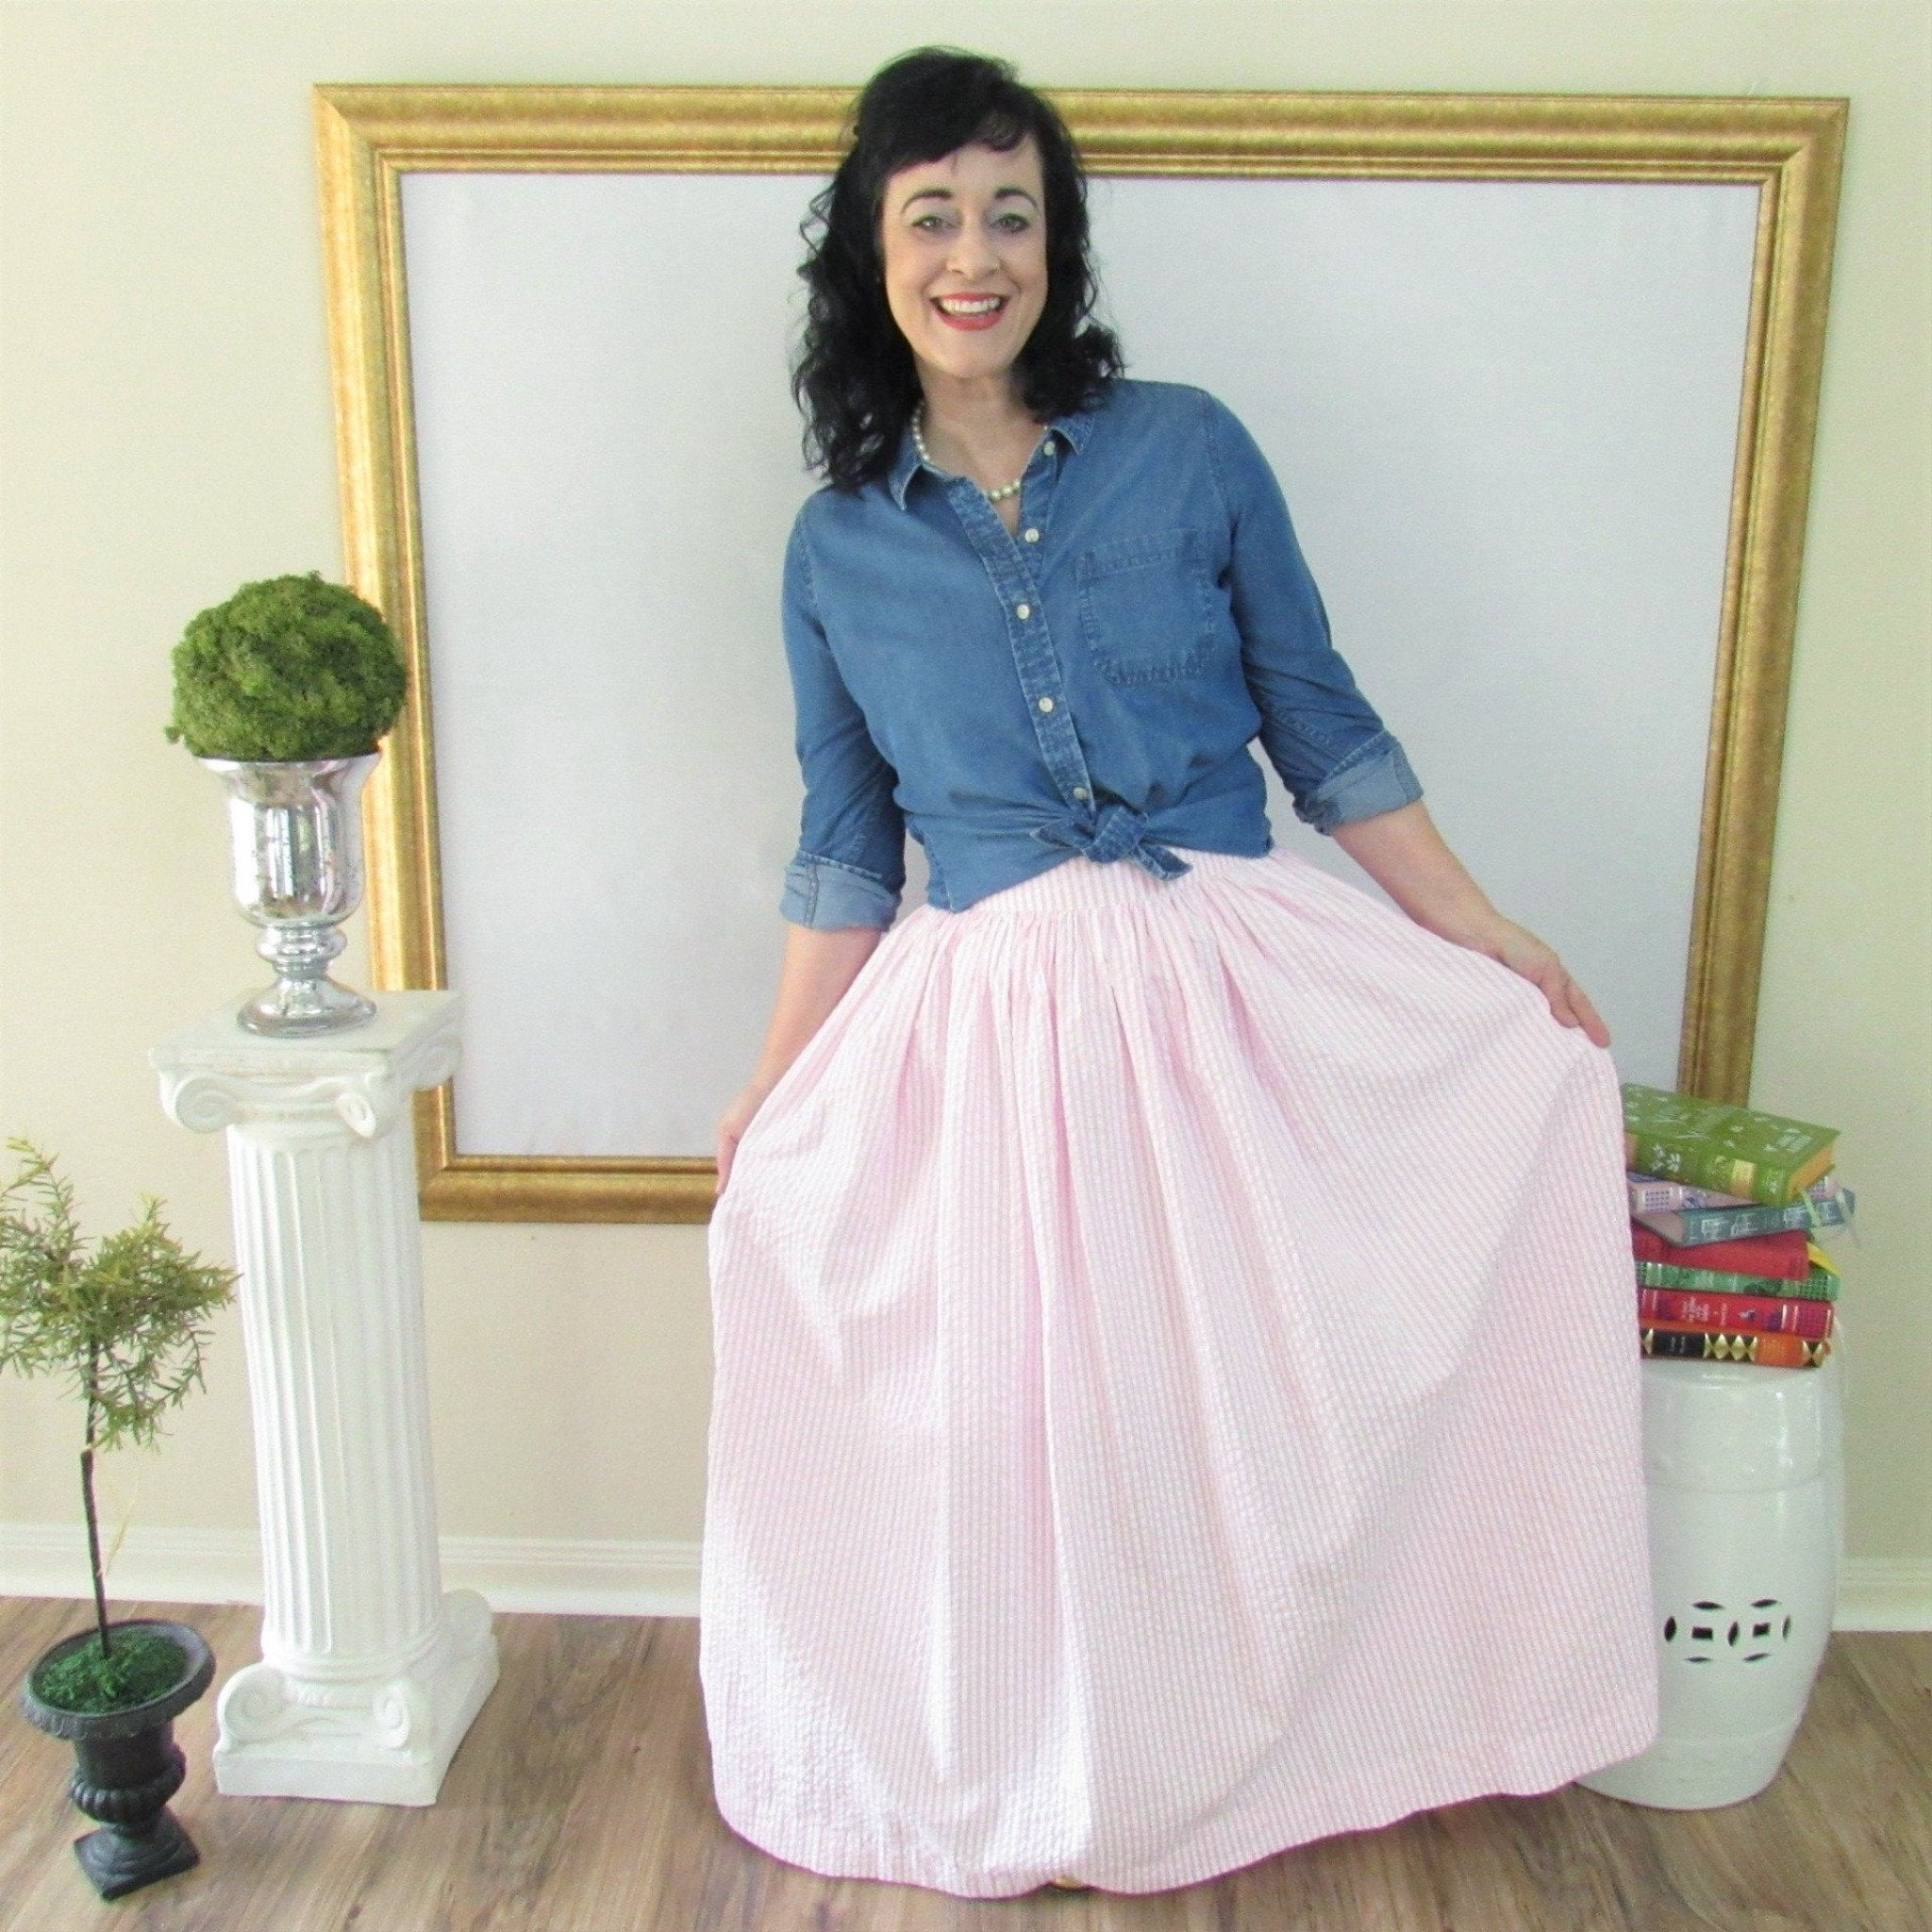 Pink and White Seersucker Anne Skirt